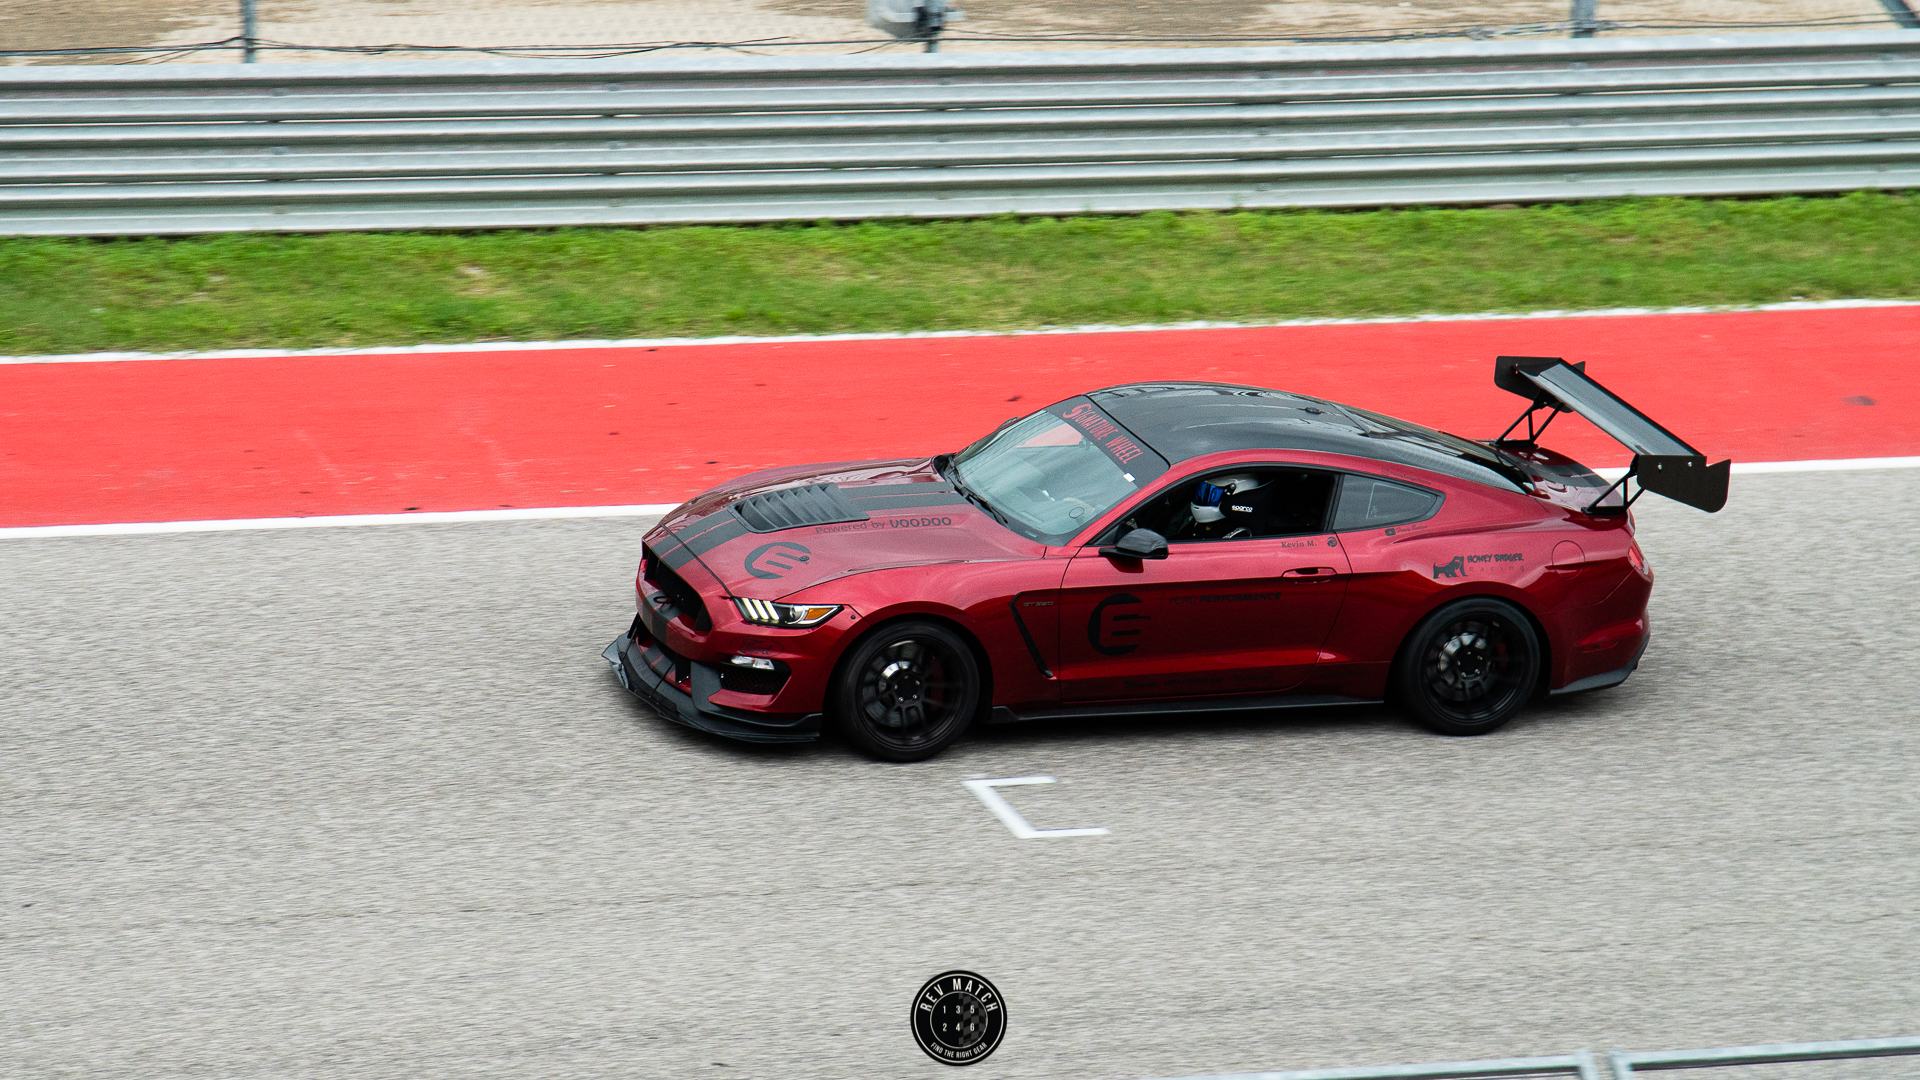 Edge Addict COTA May 2019 Rev Match Media-13.jpg